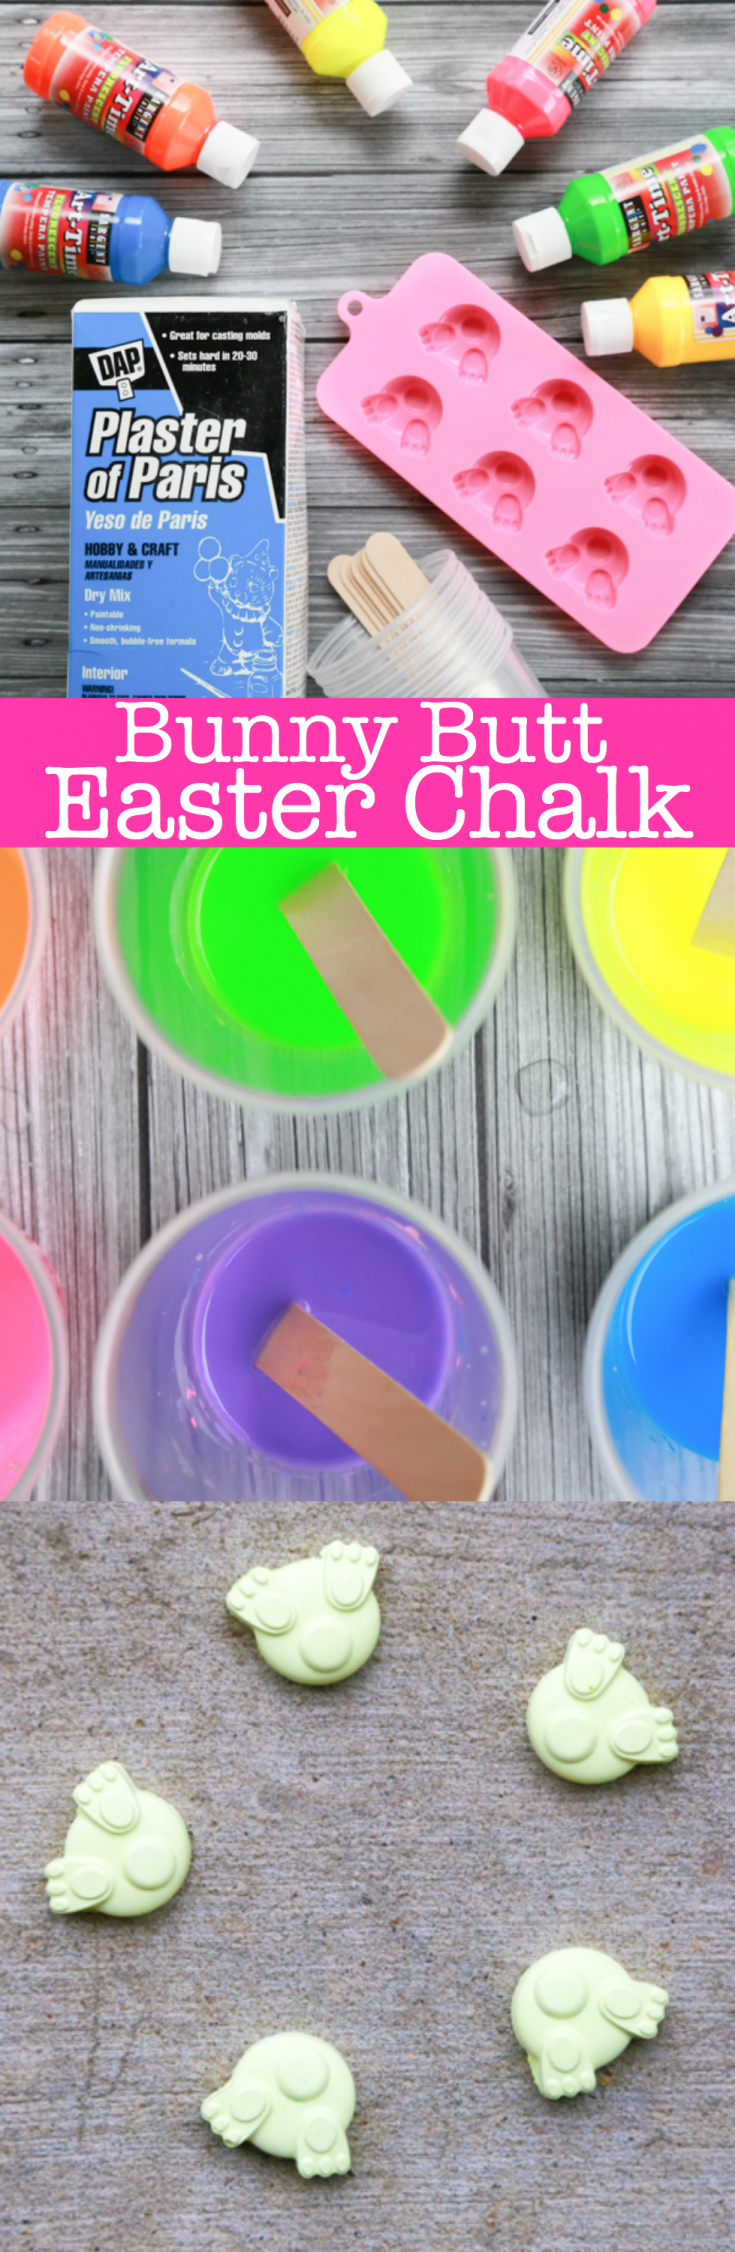 Love bunny butts? Then you'll love making and playing with Bunny Butt Easter Chalk. Keep on reading to learn how to make homemade chalk.